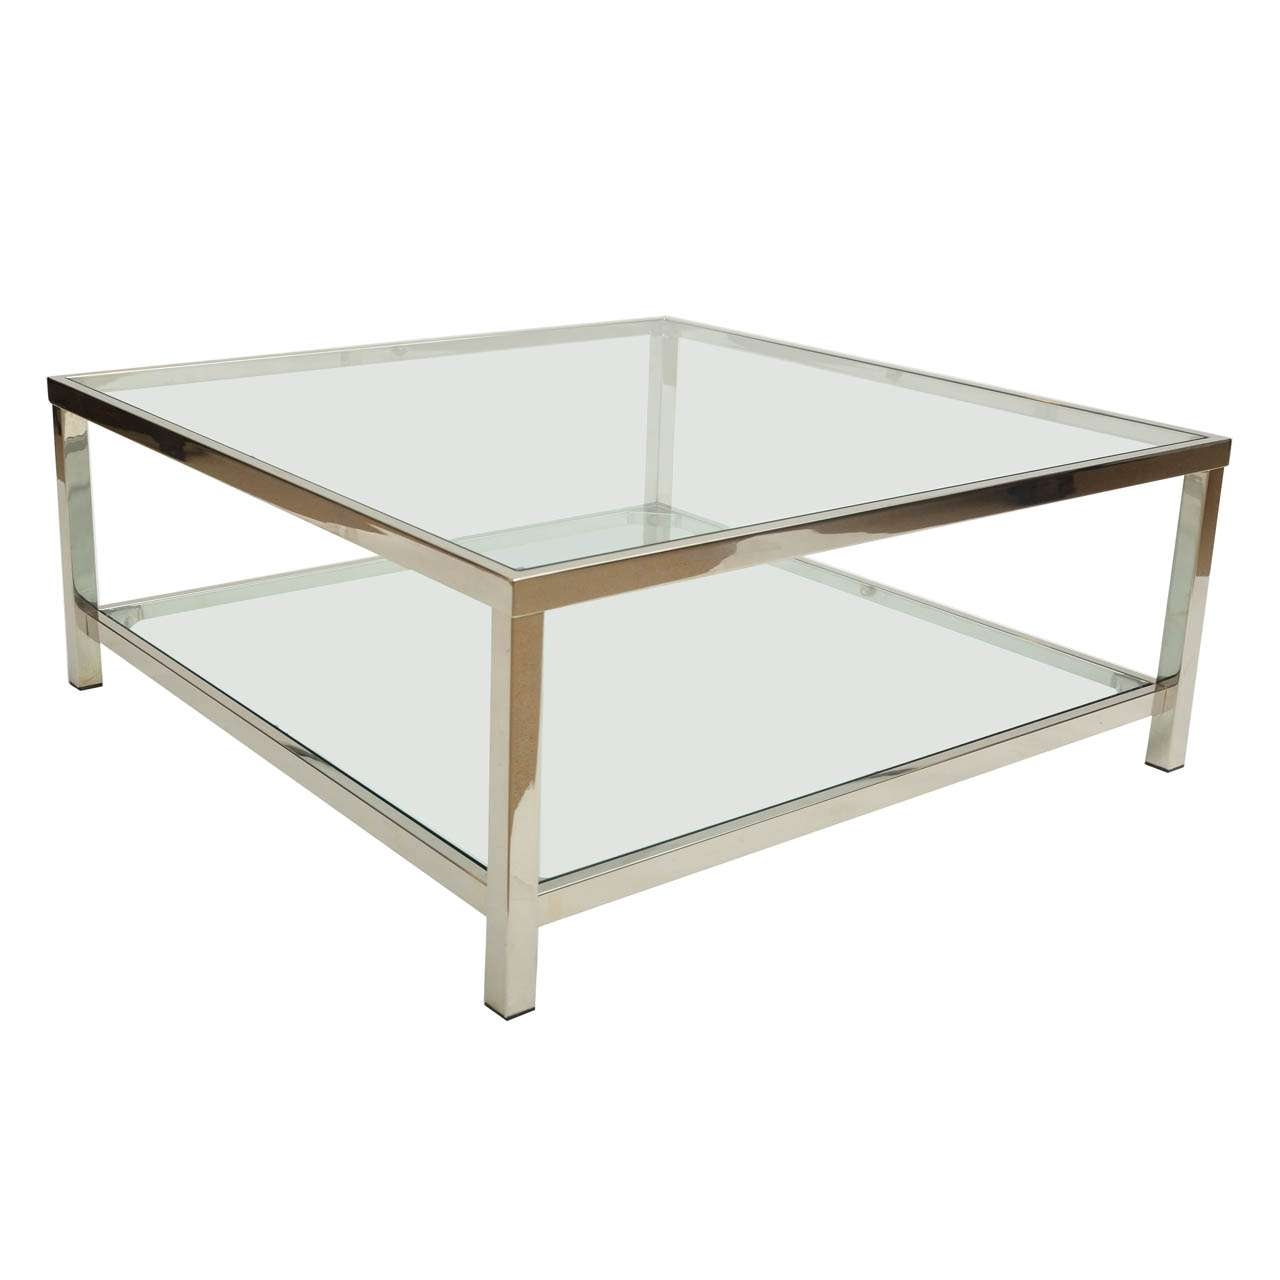 All You Need To Know About Glass And Chrome Coffee Tables Throughout Favorite Chrome Coffee Tables (View 5 of 20)